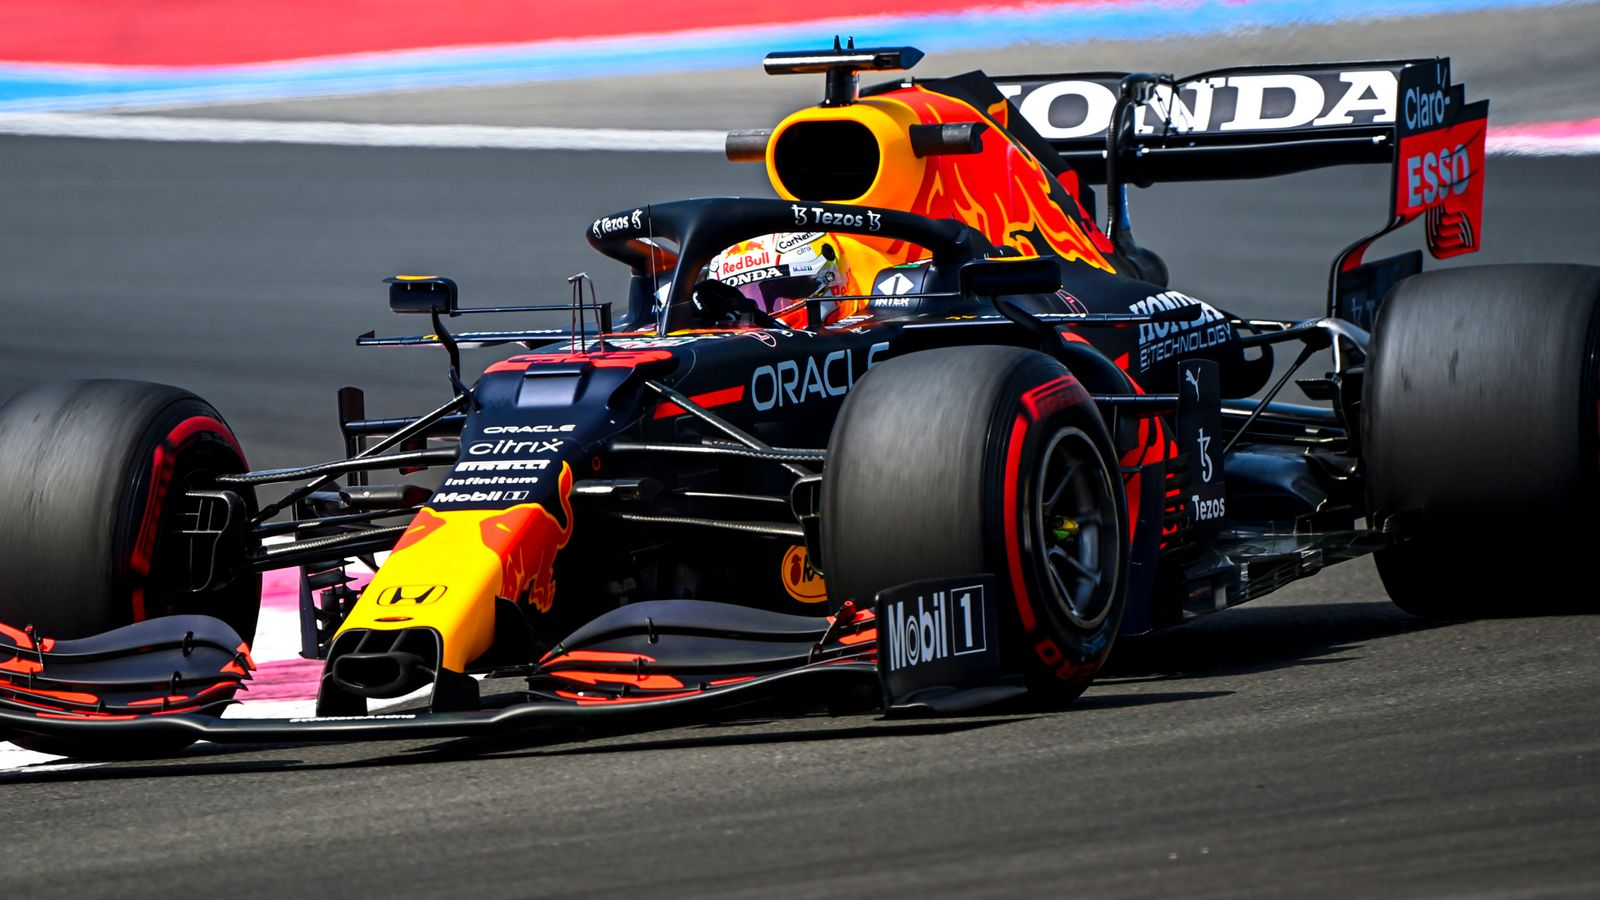 Max Verstappen wins French GP and extends title lead after late overtake on Lewis Hamilton